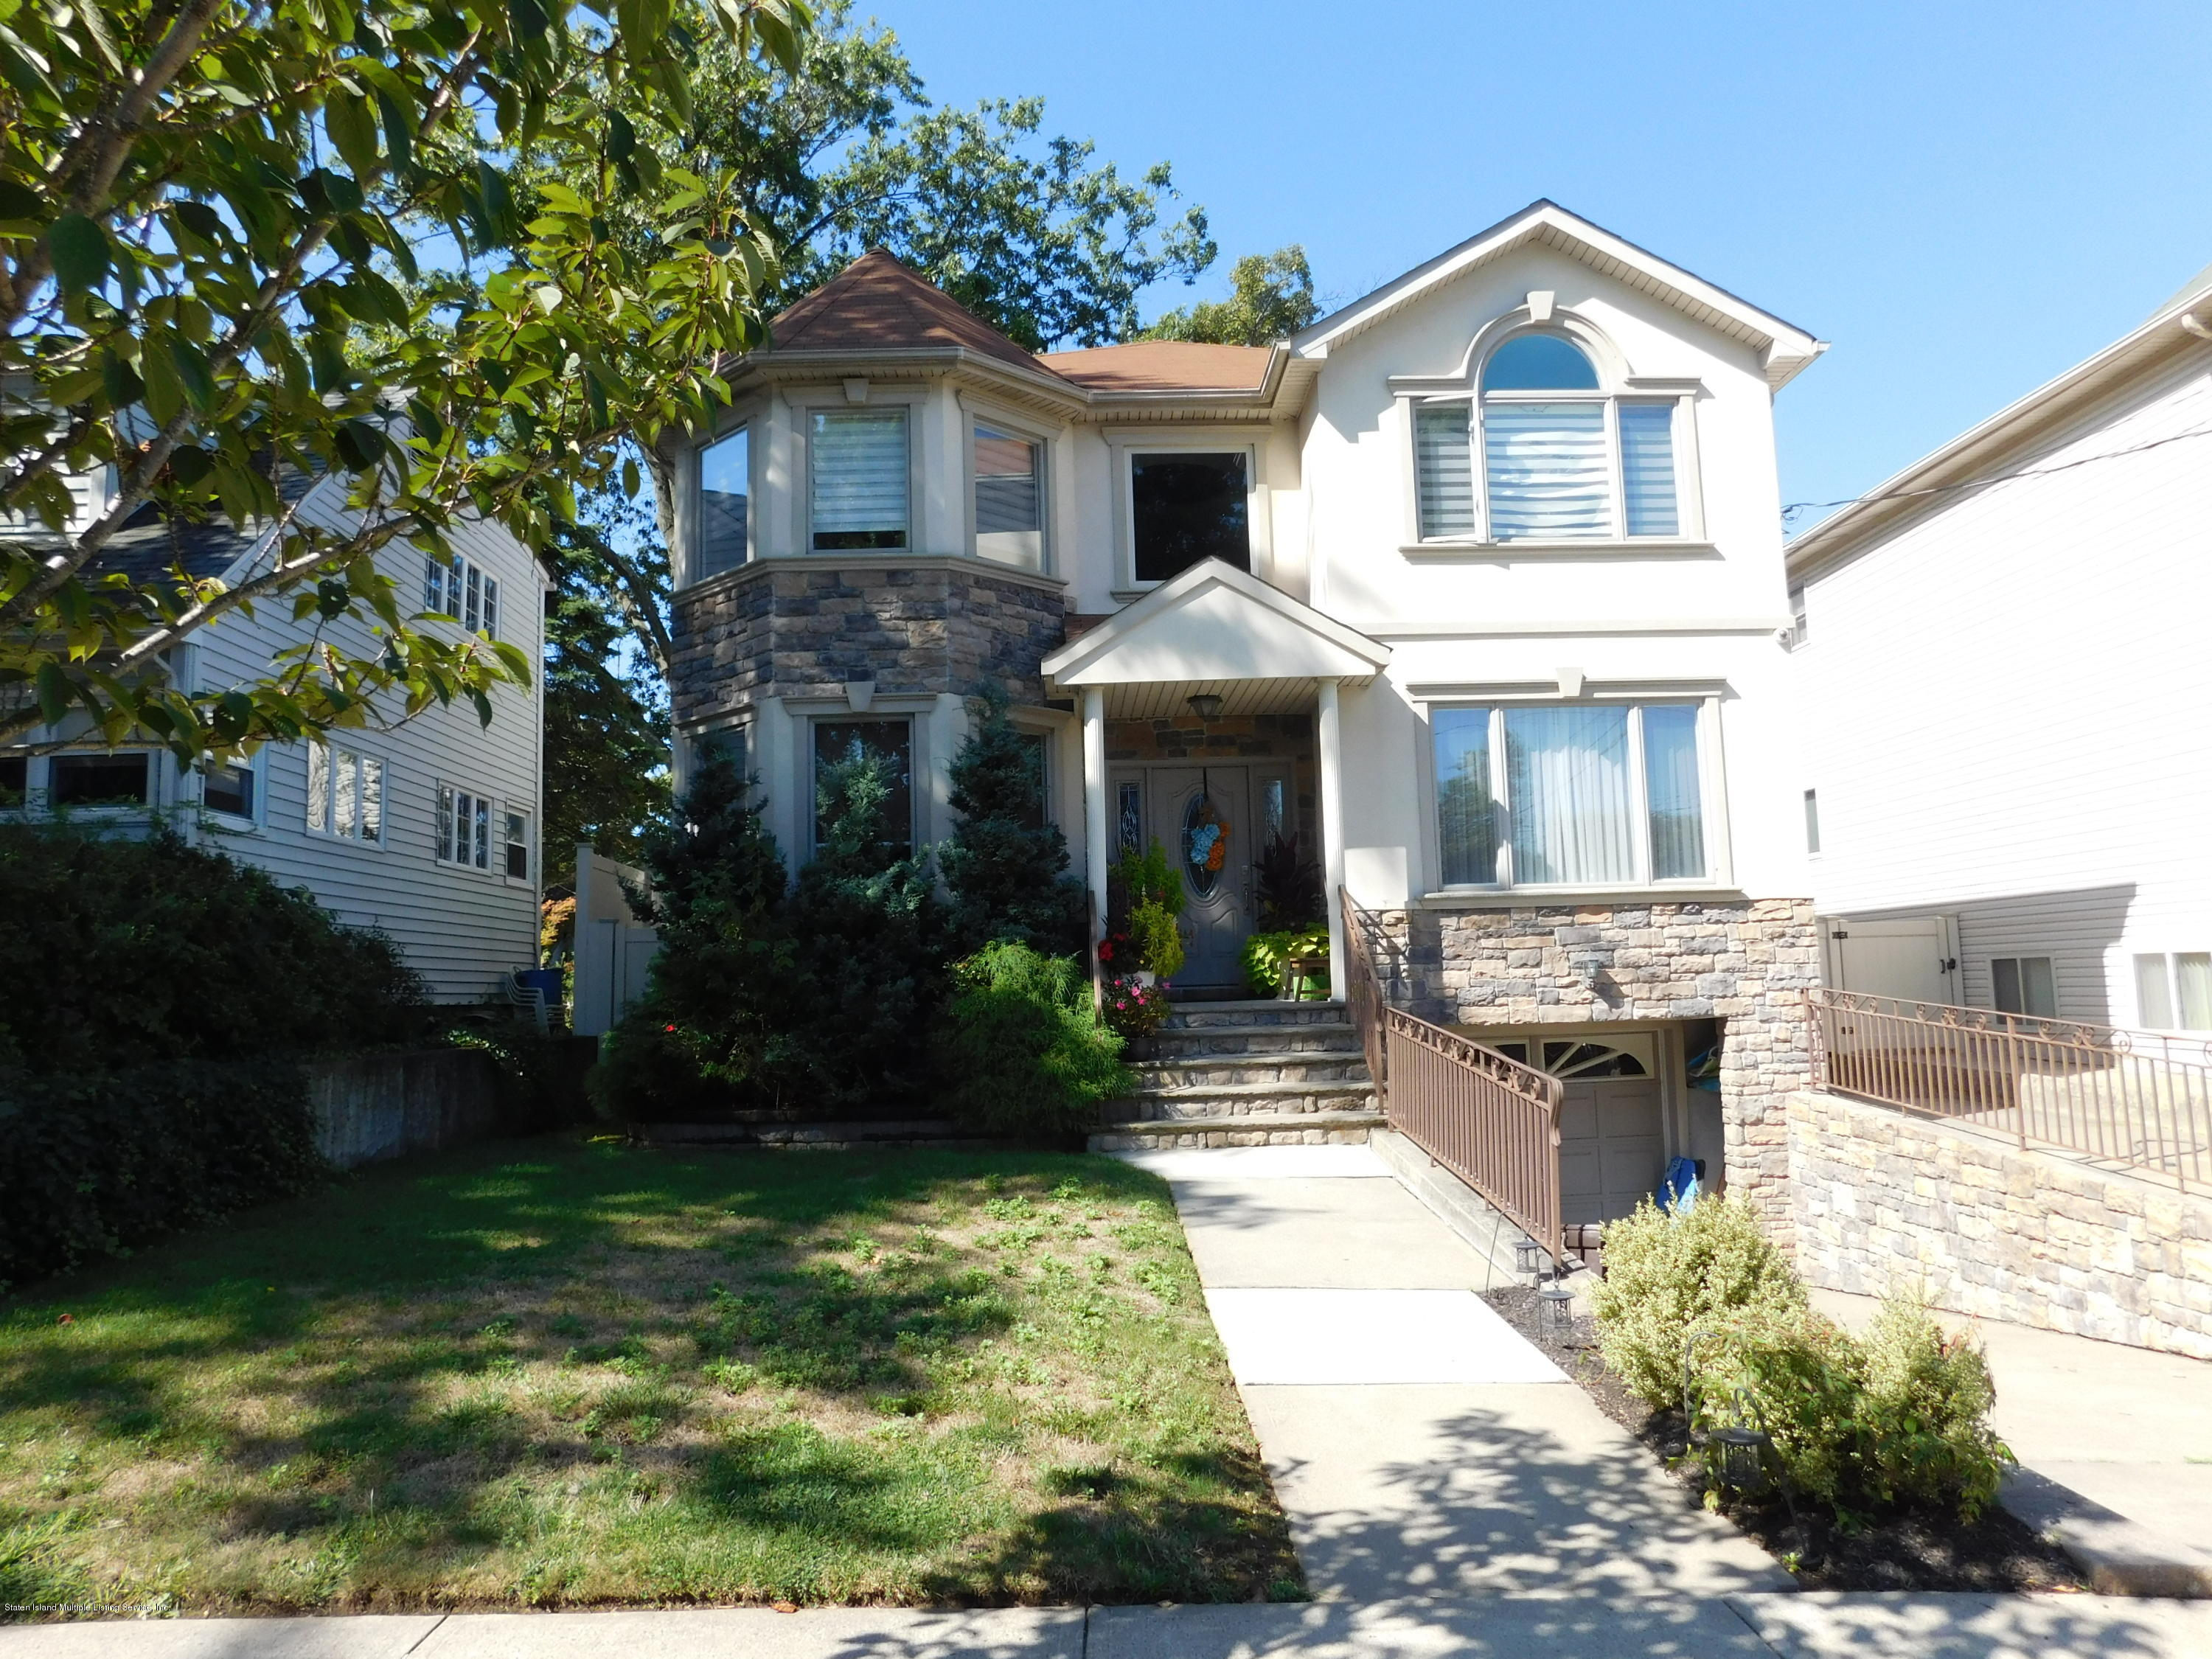 Single Family - Detached 86 Shafter Avenue  Staten Island, NY 10308, MLS-1132055-2